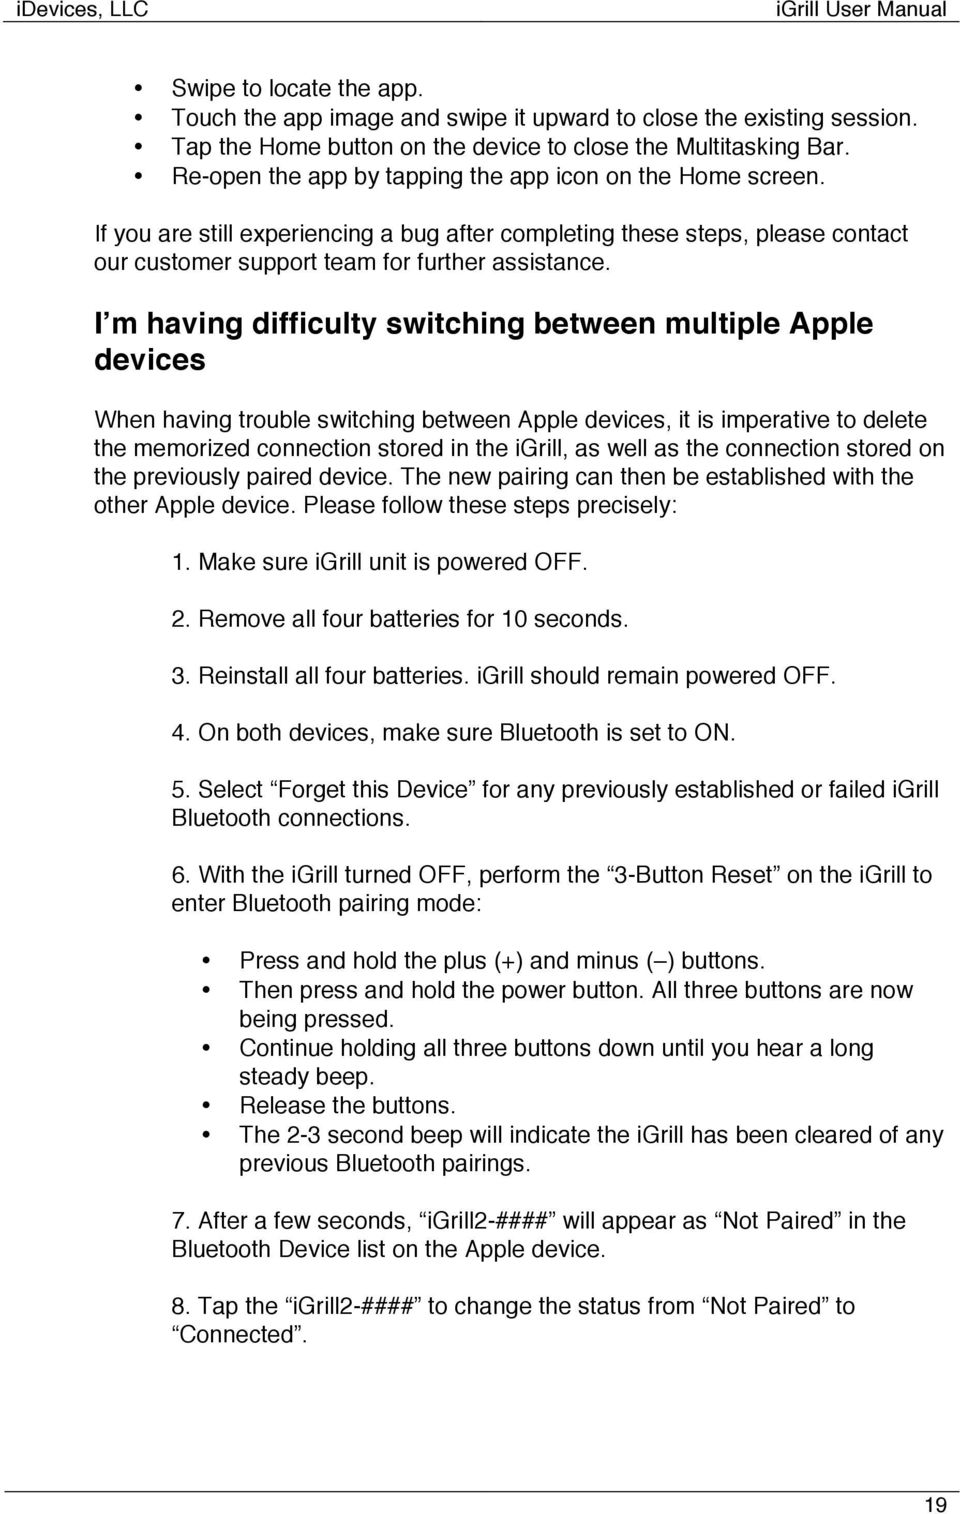 I m having difficulty switching between multiple Apple devices When having trouble switching between Apple devices, it is imperative to delete the memorized connection stored in the igrill, as well